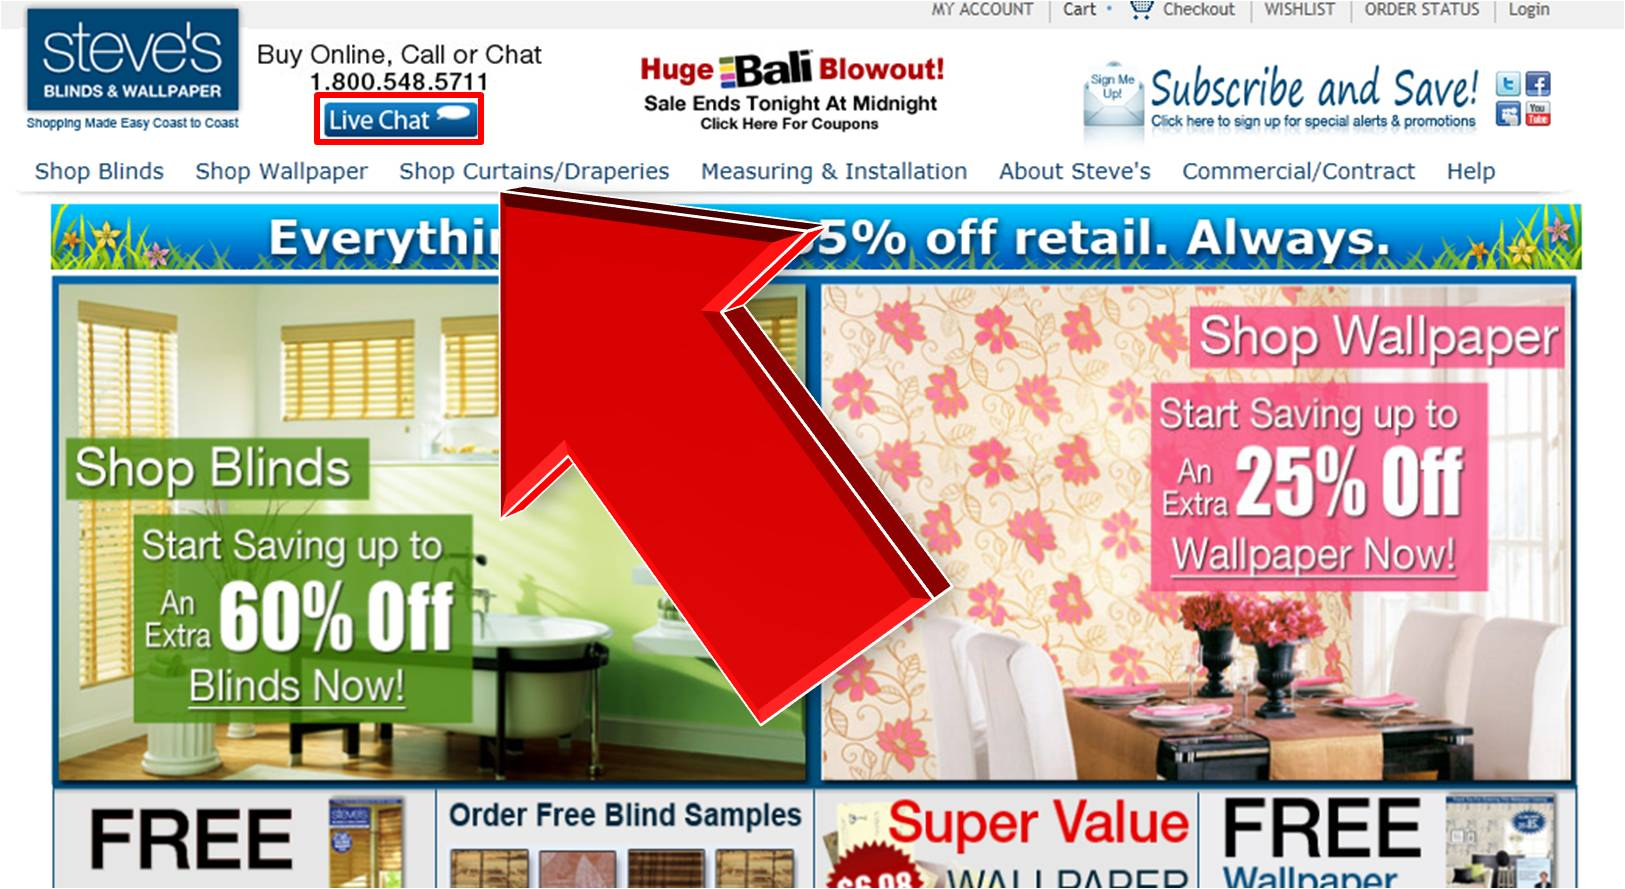 Wallpaper and Blinds Coupon Codes